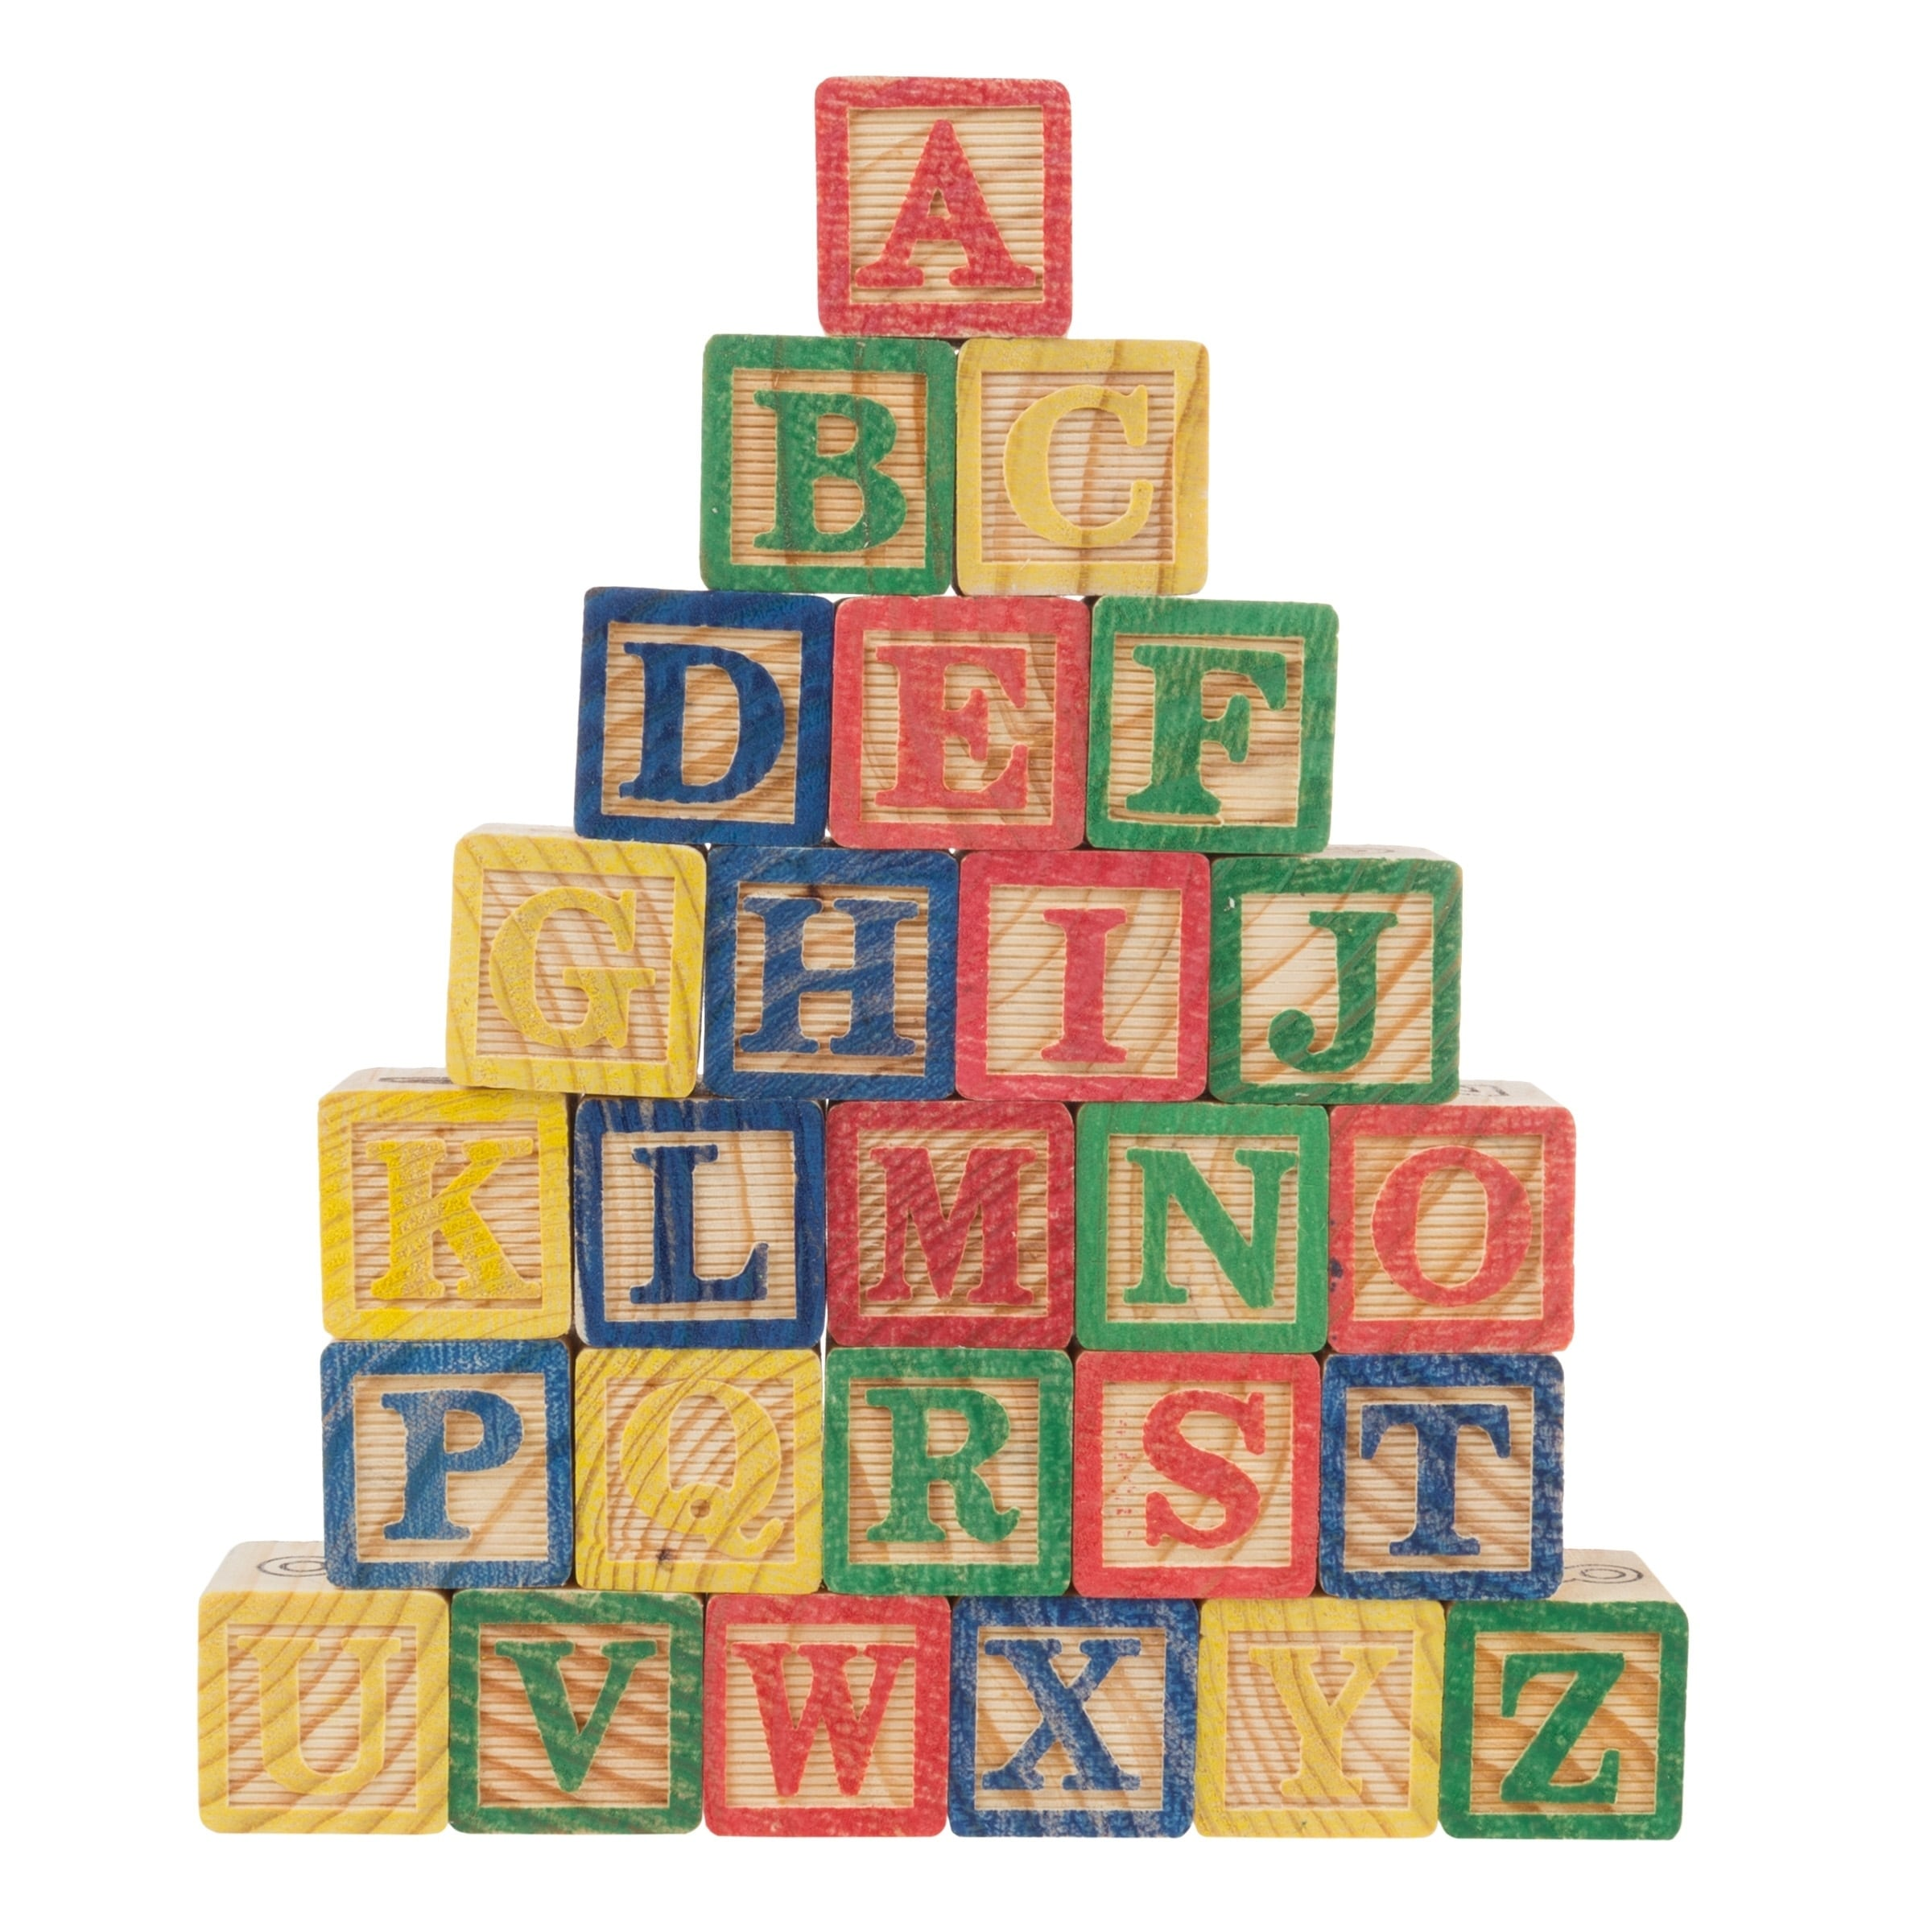 Abc And 123 Wooden Blocks Alphabet Letters And Numbers Learning Block Set Educational Stem By Hey Play